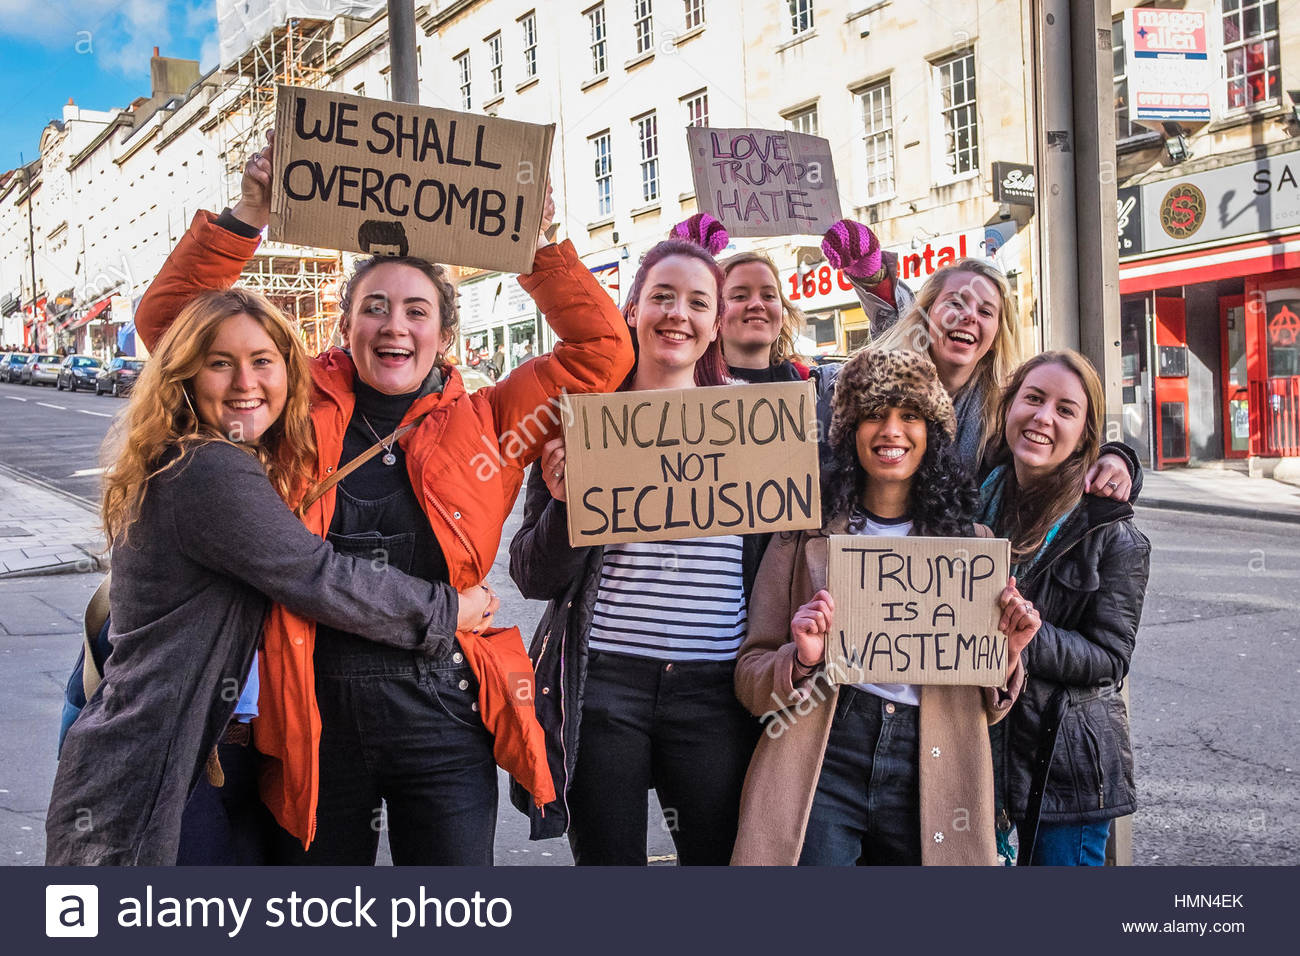 Bristol, UK - 04 February 2017:  Group of young women  wave banners and march through the city of Bristol, UK, protesting - Stock Image